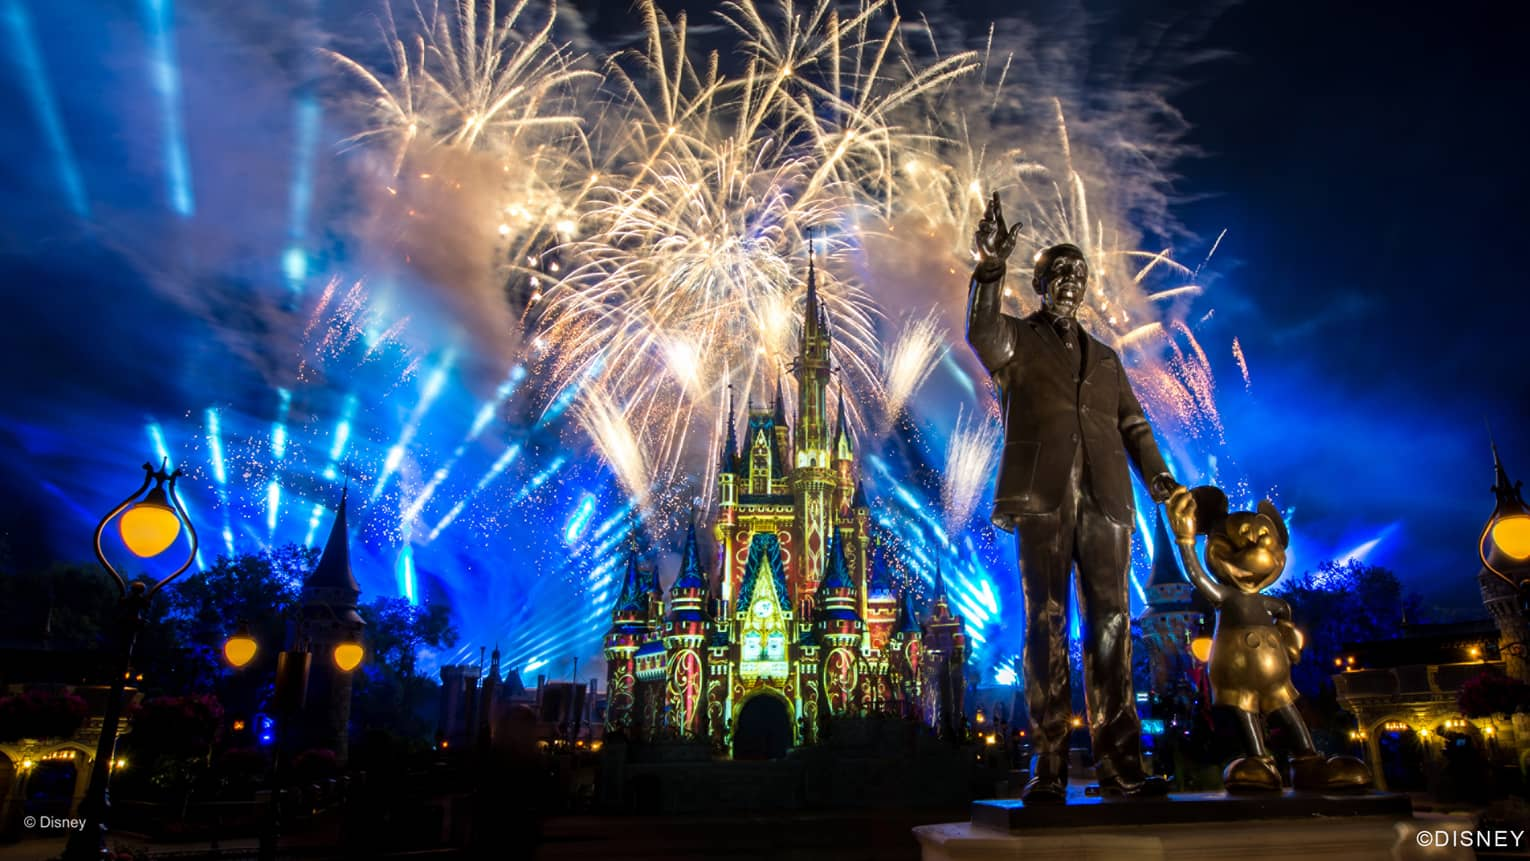 Fireworks and blue lights fill the night sky above the monument of Walt Disney at Disney world in orlando florida